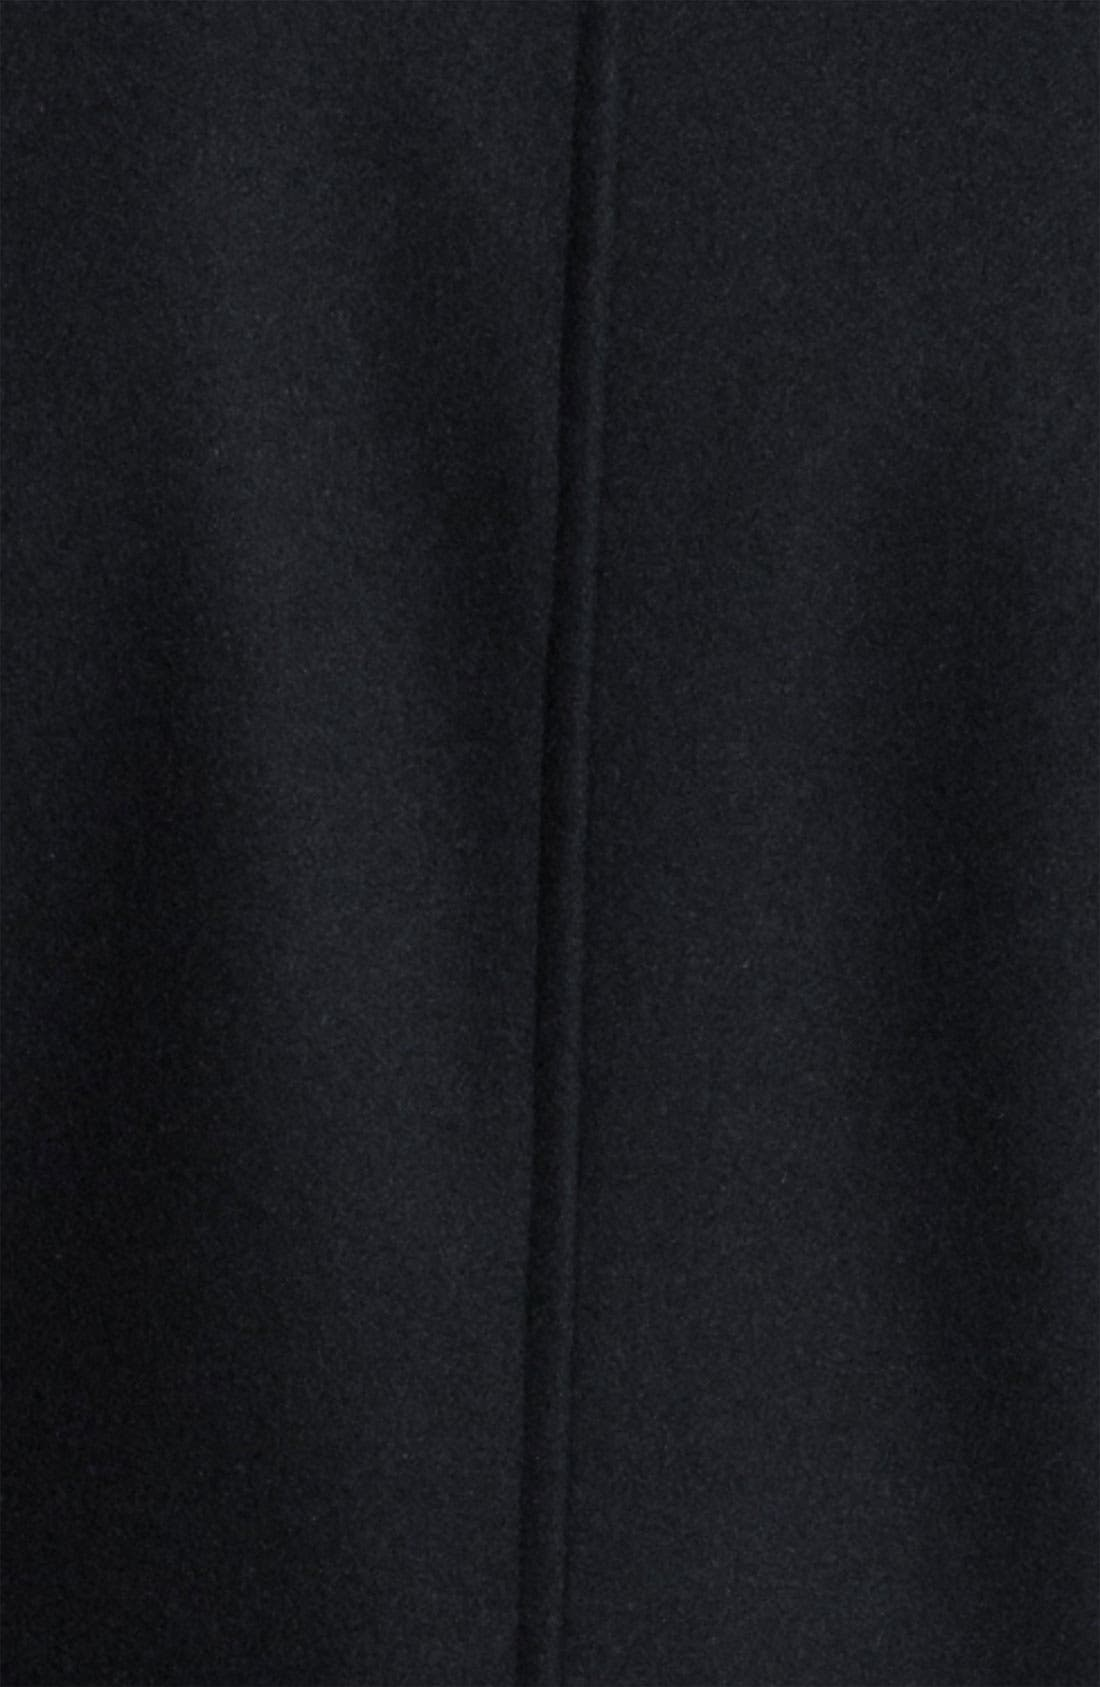 Alternate Image 3  - Burberry Brit Wool Blend Trim Fit Trench Coat